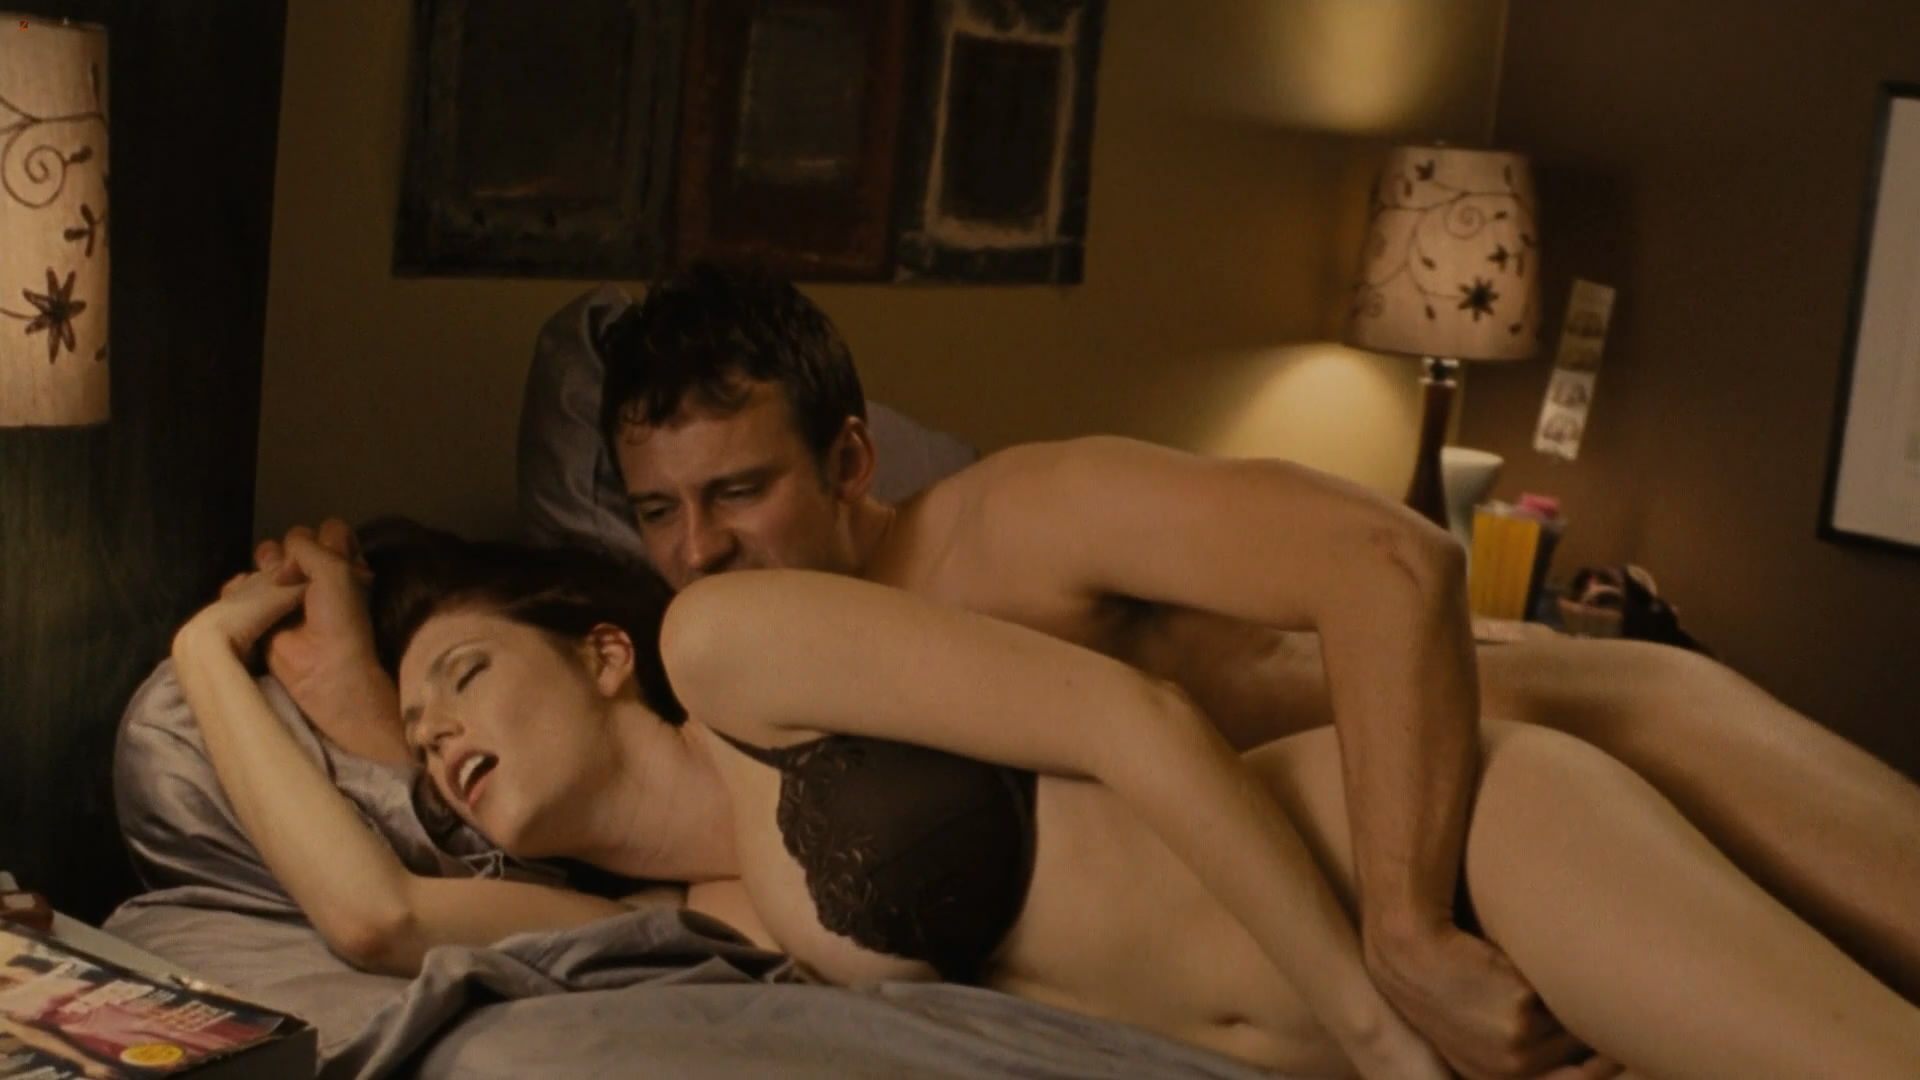 Carly Pope nude sex Diora Baird not nude but sexy Sonja Bennett nude sex – Young People Fucking (2007) hd1080p